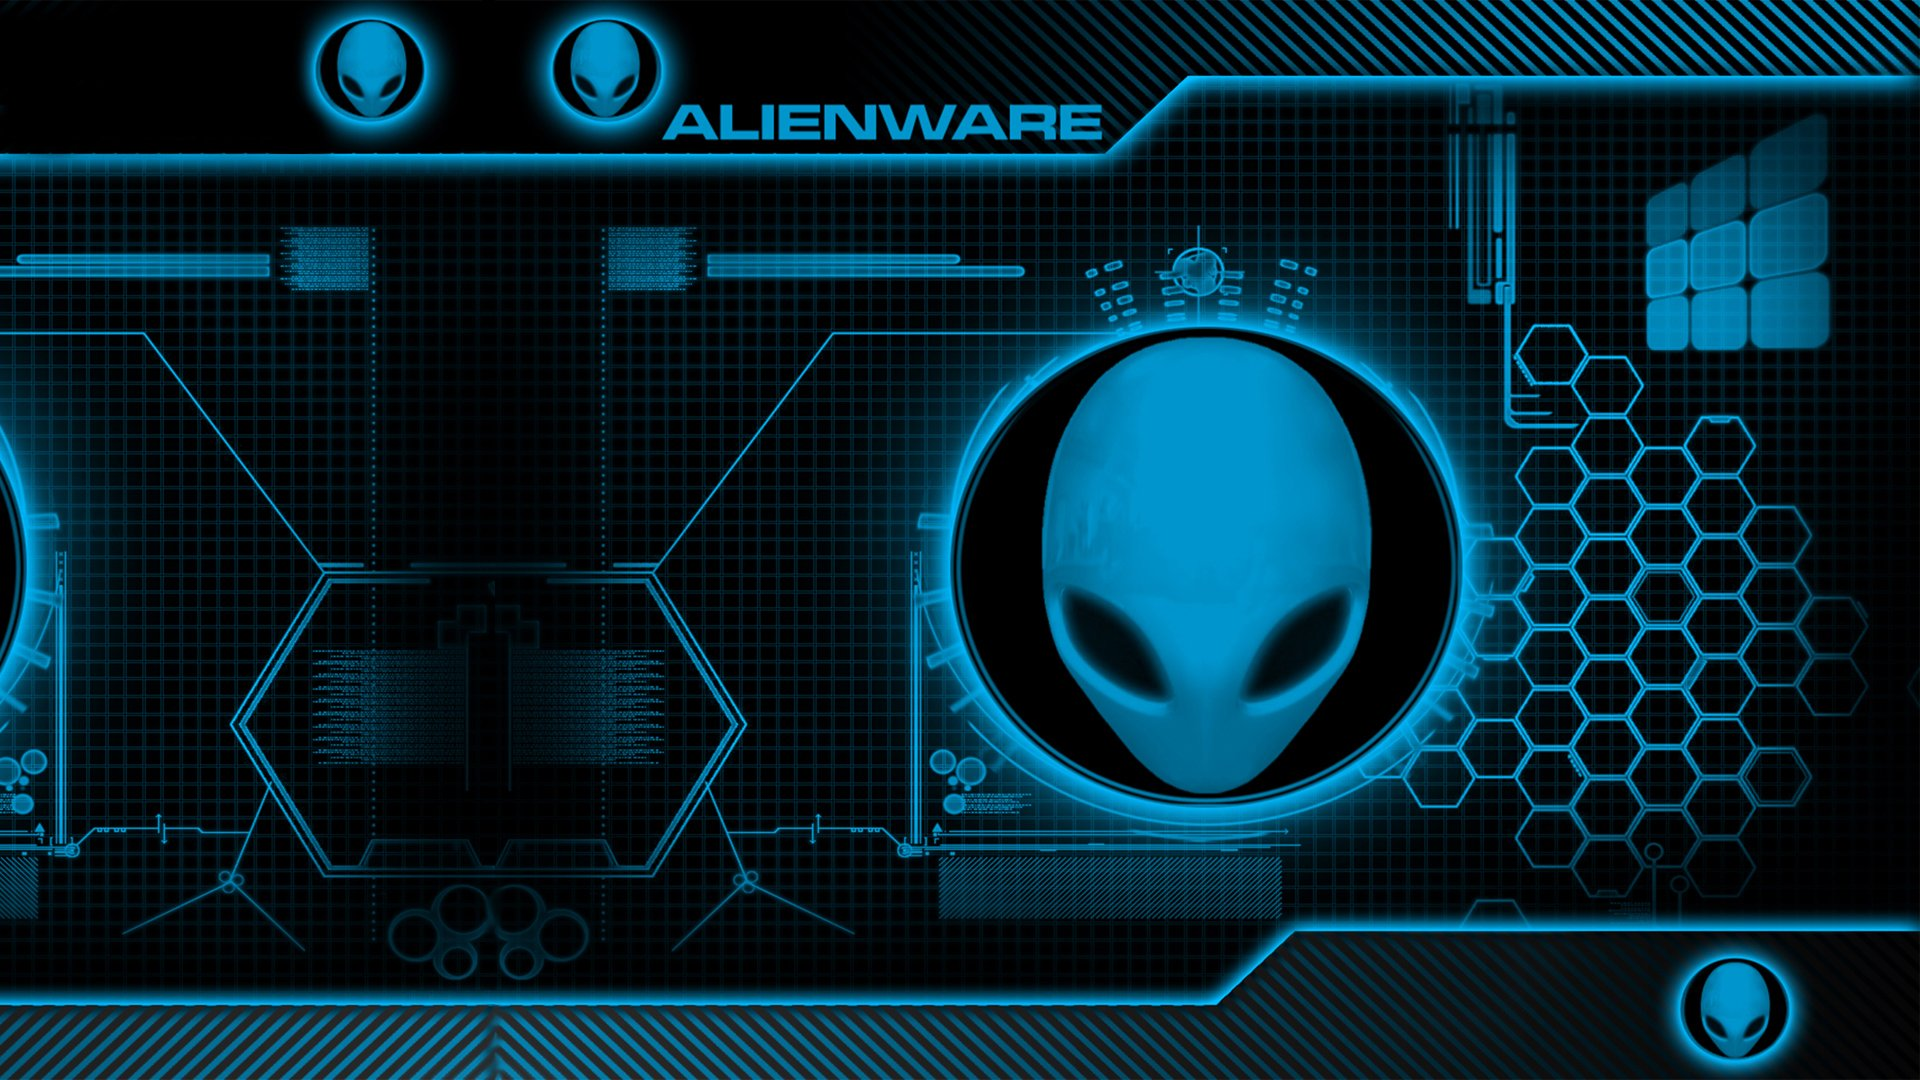 Alienware wallpapers for windows 7 wallpapersafari -  7 Wallpapersafari Windows Operating Systems Computers Jedi Knowledge Base Hd Alienware Wallpapers 1920x1080 Alienware Backgrounds For